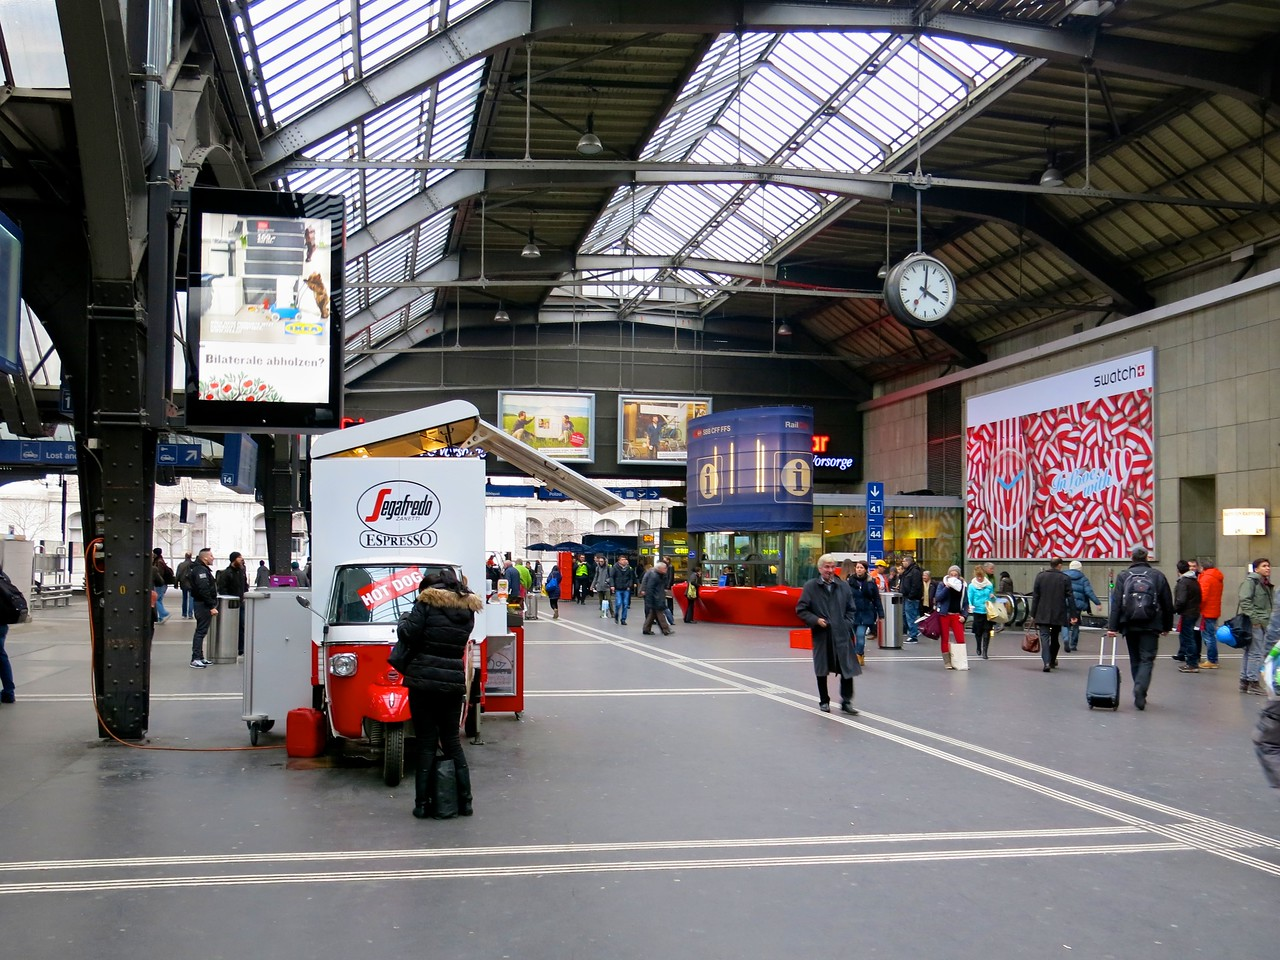 In 2004, the station had an average of 340,000 passengers each day. The station is busy at all times, with trains running from 05:00 until 01:00 during the week. From Friday night to Sunday morning, trains run all day and all night.